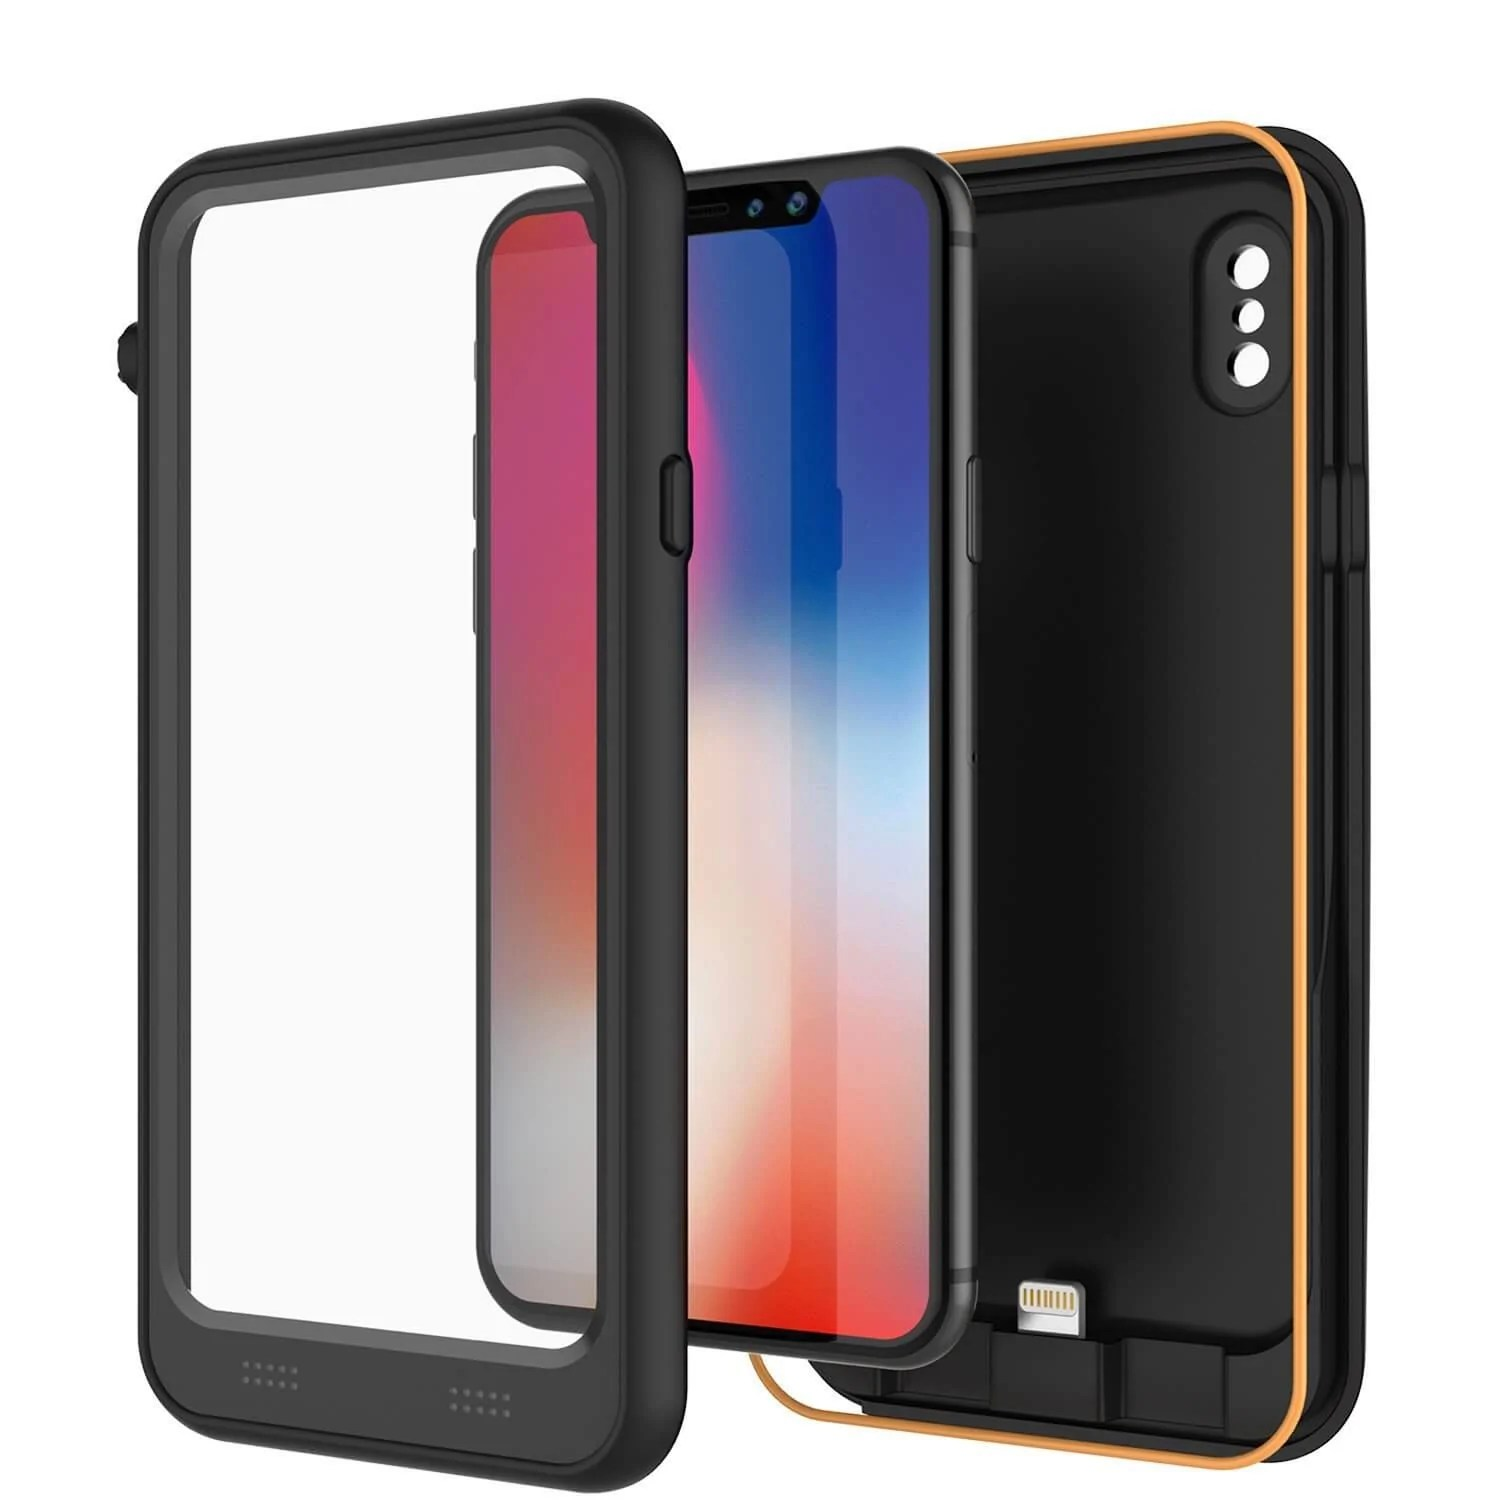 Battery Case For Iphone X Punkjuice Iphone X Battery Case Waterproof Ip68 Certified Ultra Slim Black